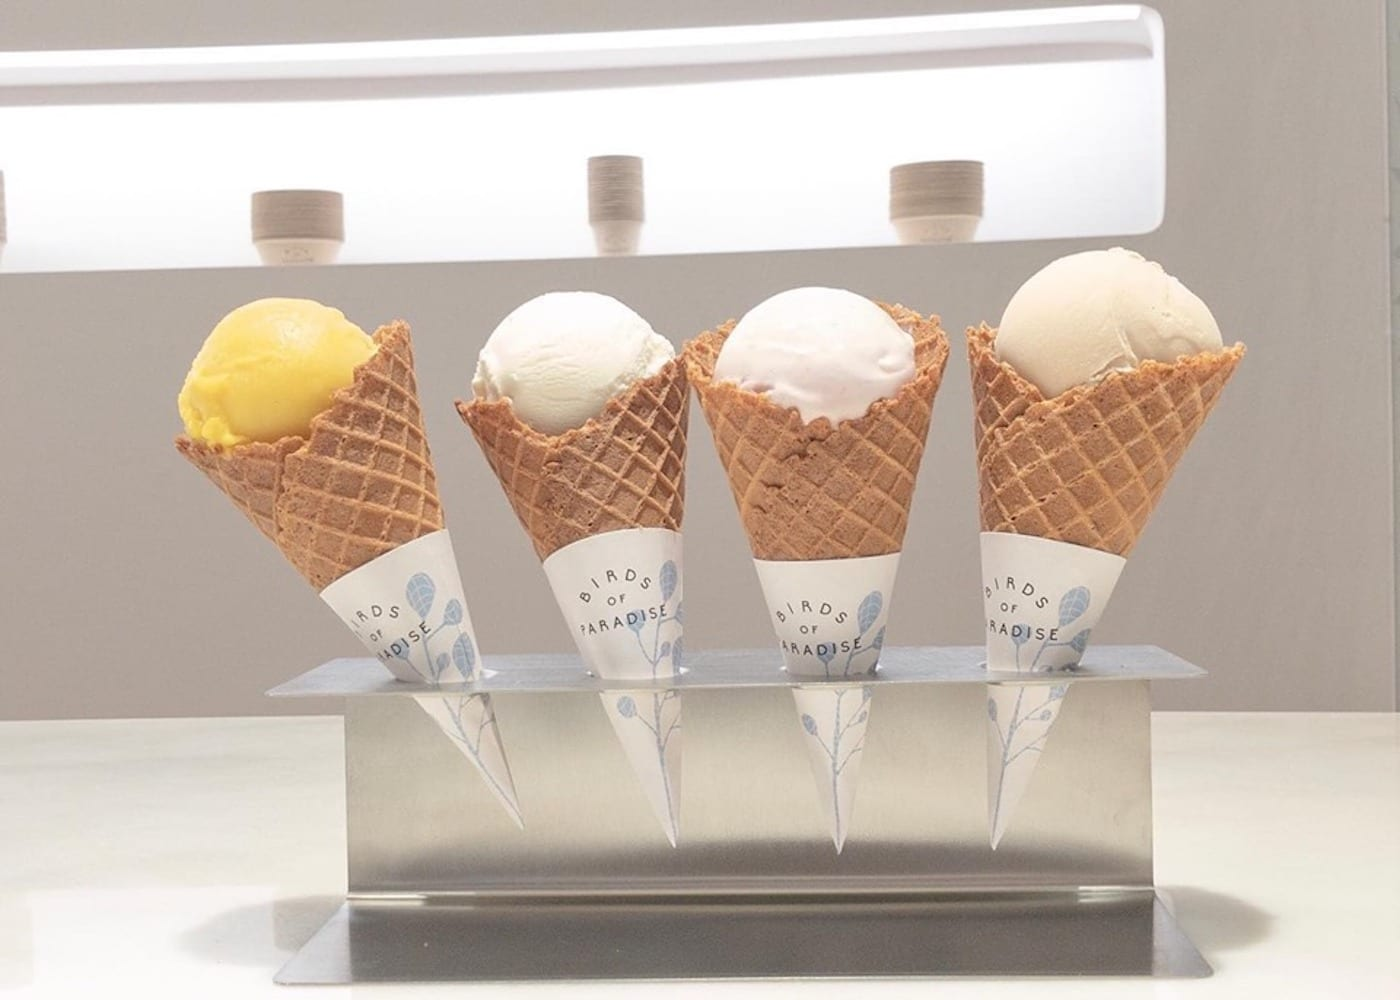 Best places in Singapore for ice cream, gelato, waffles and popsicles: Birds of Paradise on East Coast Road and at Jewel Changi